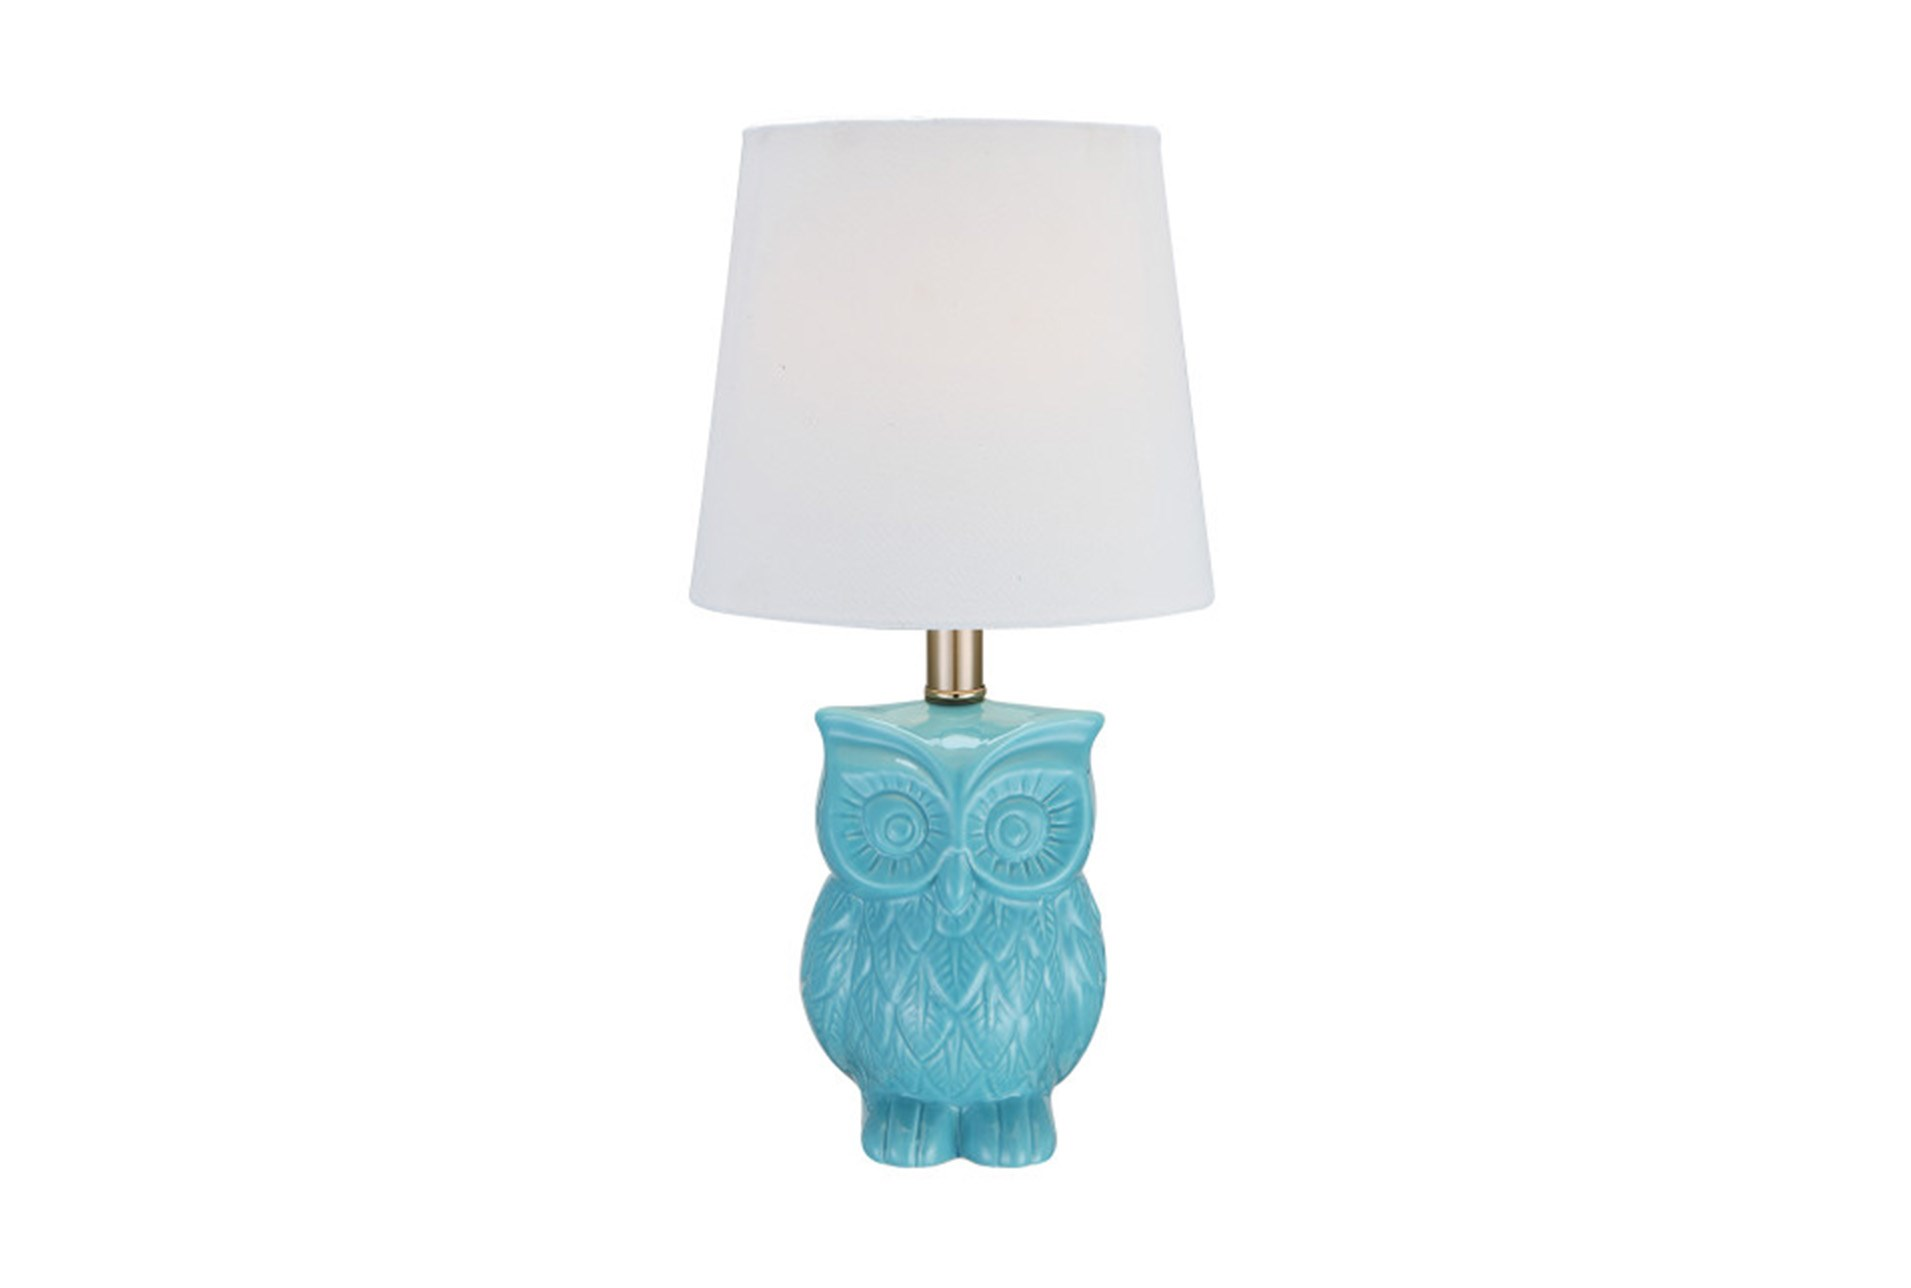 shade aqua drum lamp modern white decor bad to desk glass good furniture with lamps for table online design soothing home or and be are blue installed